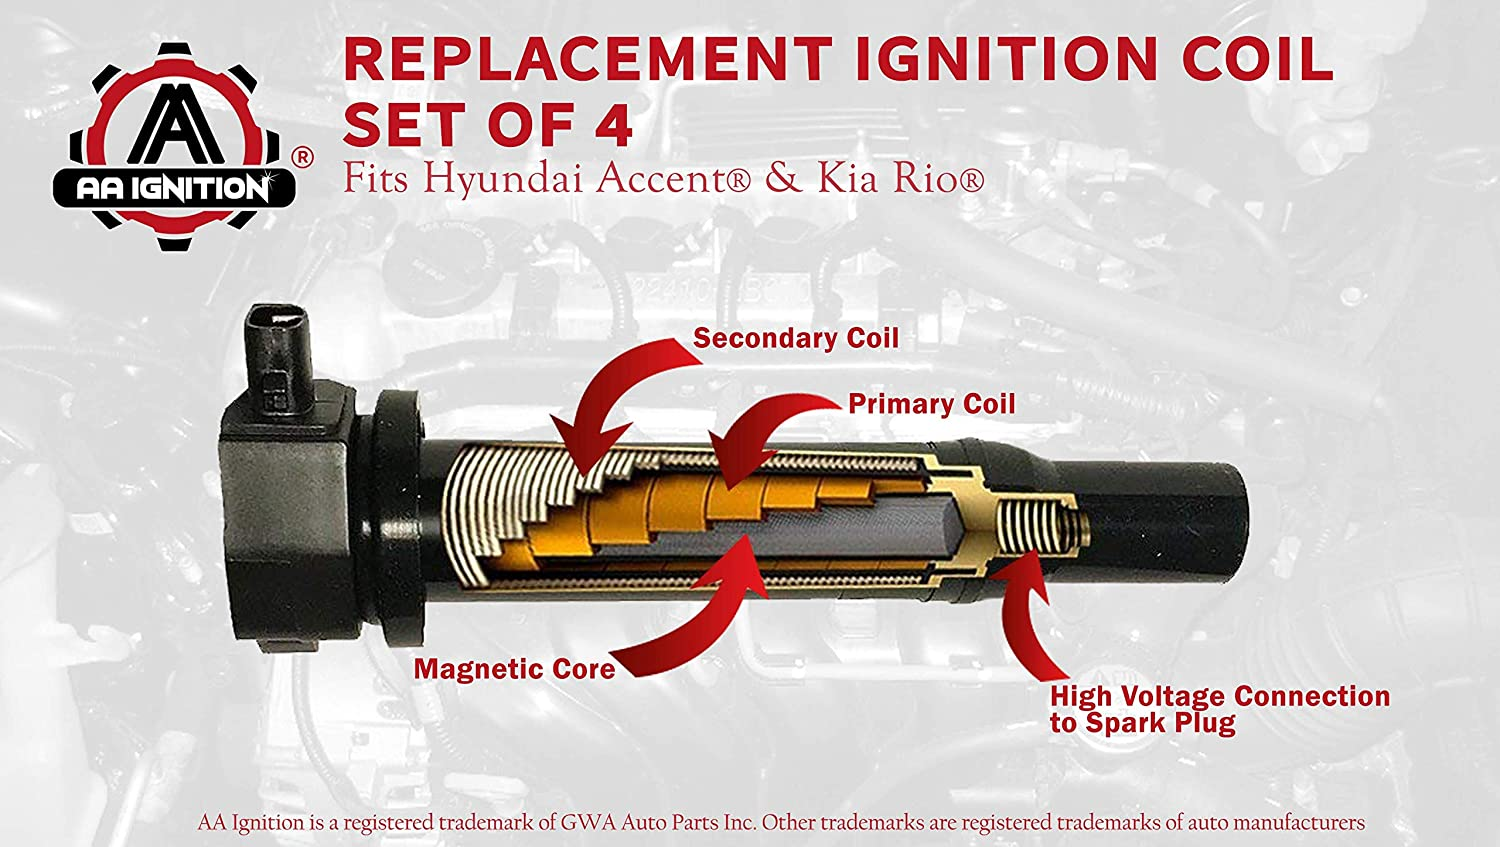 Ignition Coil Pack Set Of 4 Fits Hyundai Accent Kia Rio Replaces 27301 26640 Ignition Coil Pack Fits 2010 Hyundai Accent 2009 Hyundai Accent